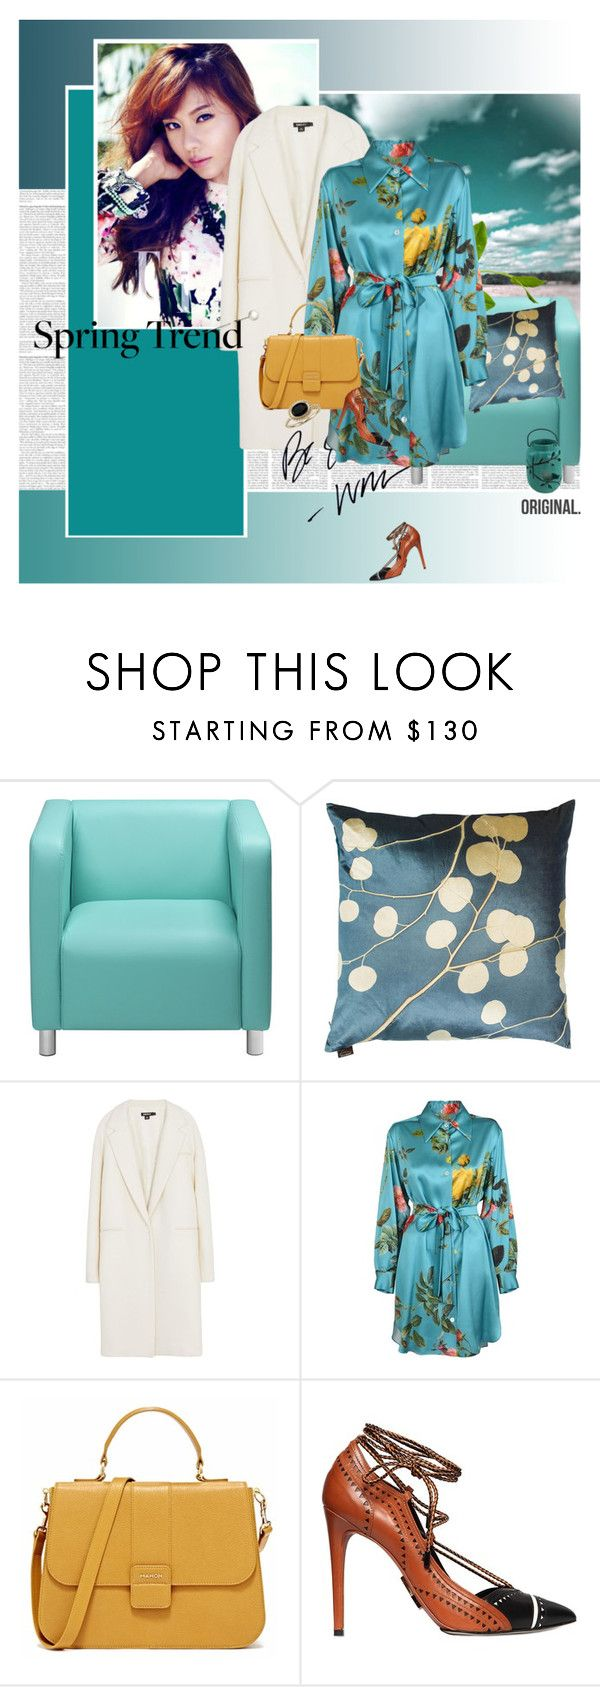 """""""Hello Spring"""" by stephaniee90 ❤ liked on Polyvore featuring Aviva Stanoff, DKNY, Daniele Michetti and Blue Nile"""